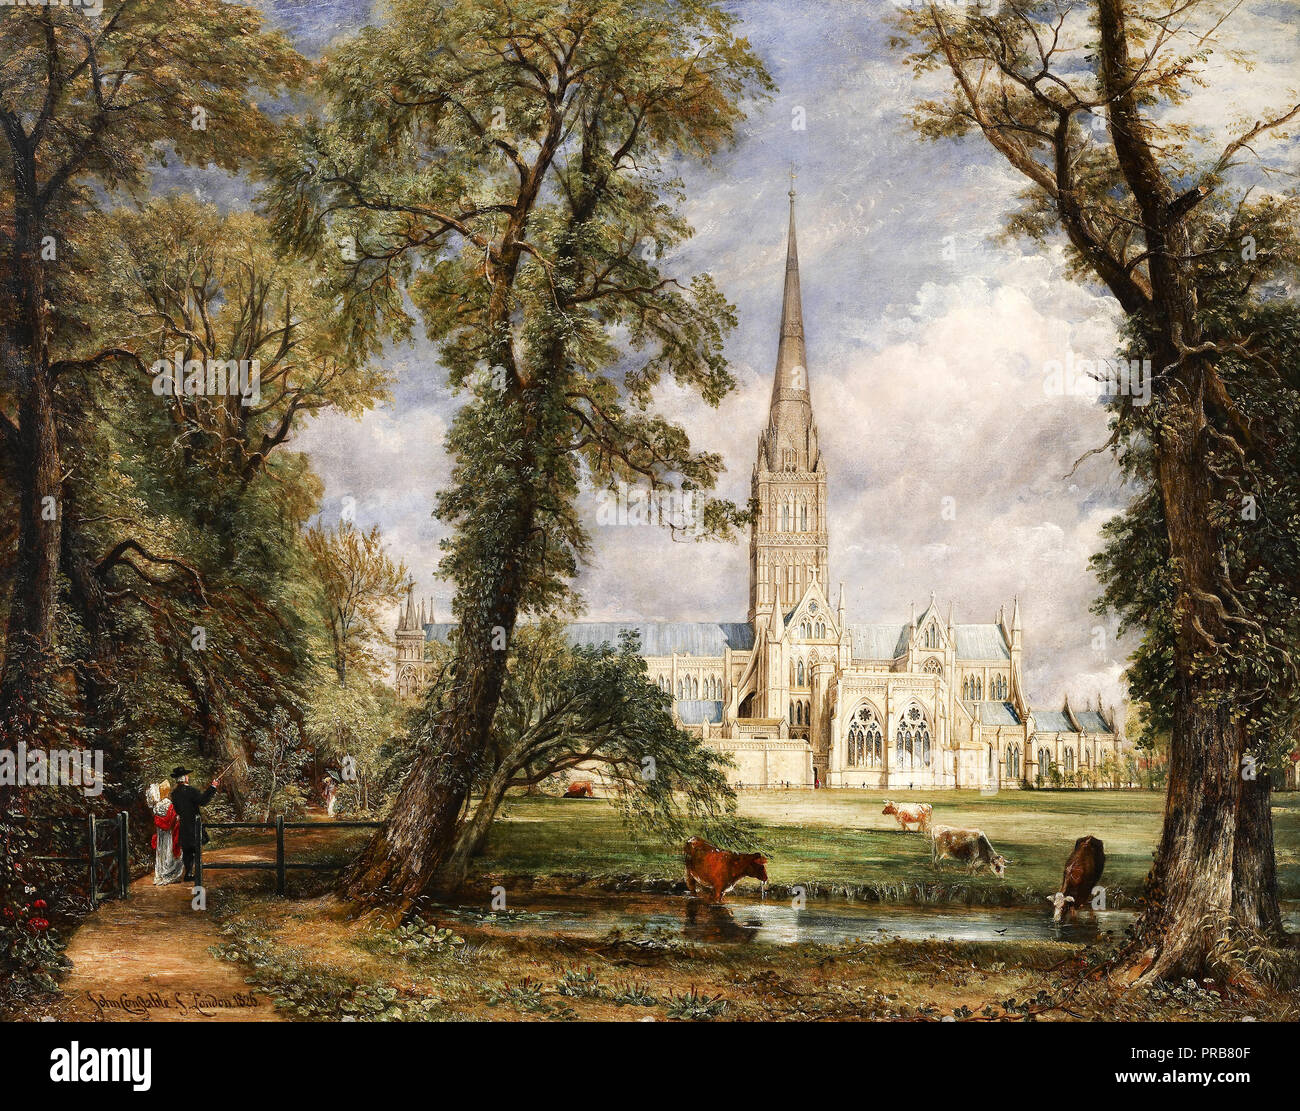 John Constable, Salisbury Cathedral from the Bishop's Garden 1826 Oil on canvas, Frick Collection, New York, USA. Stock Photo